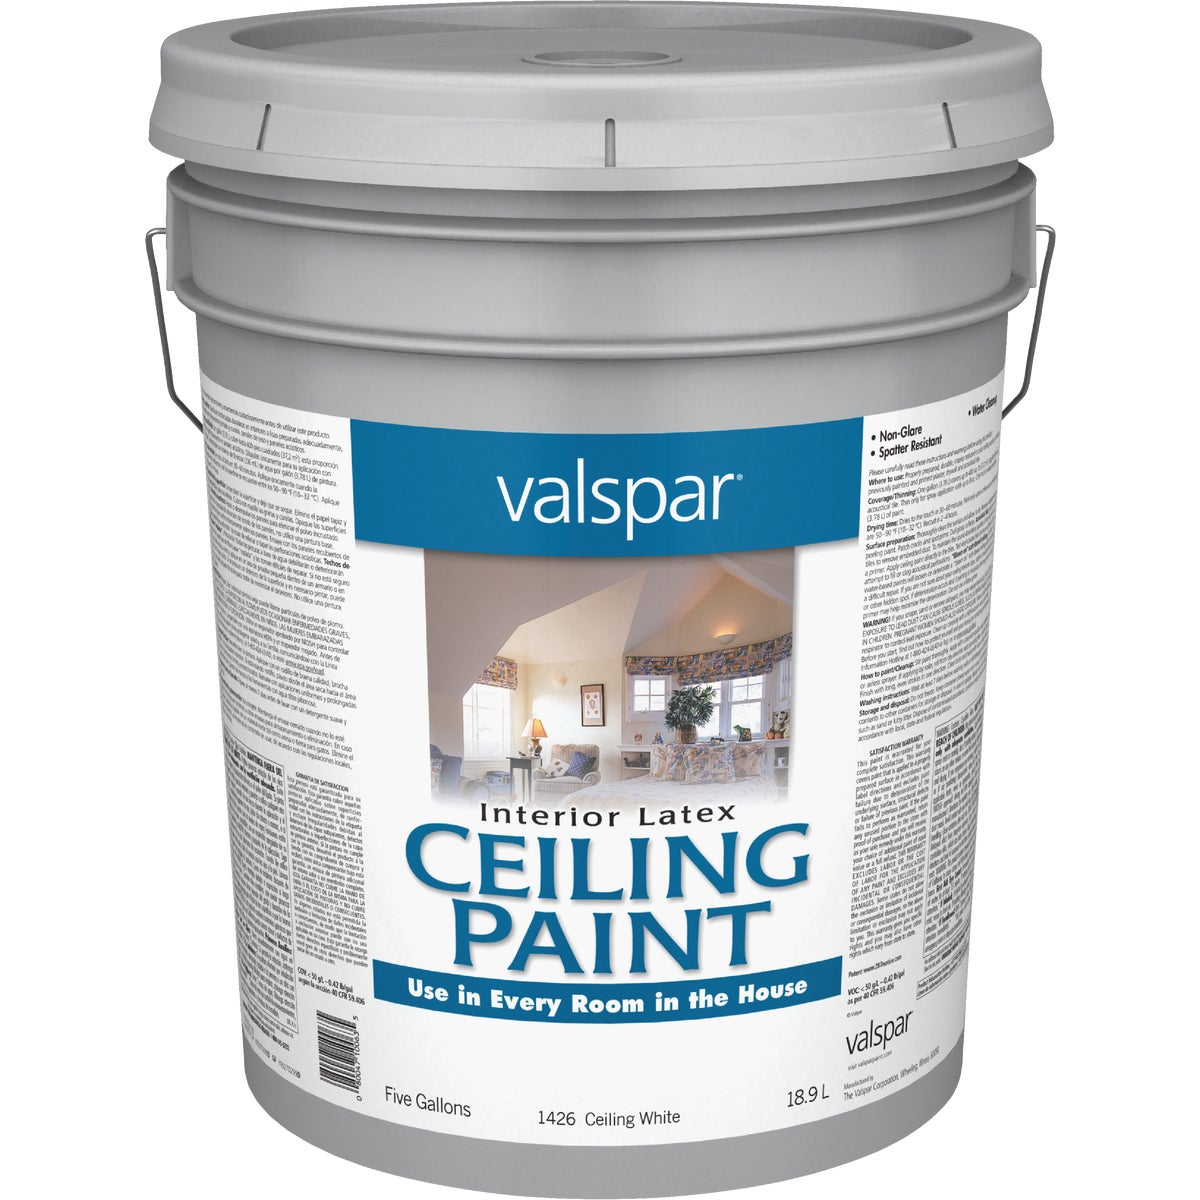 INT WHITE CEILING PAINT - 027.0001426.008 by Valspar Corp